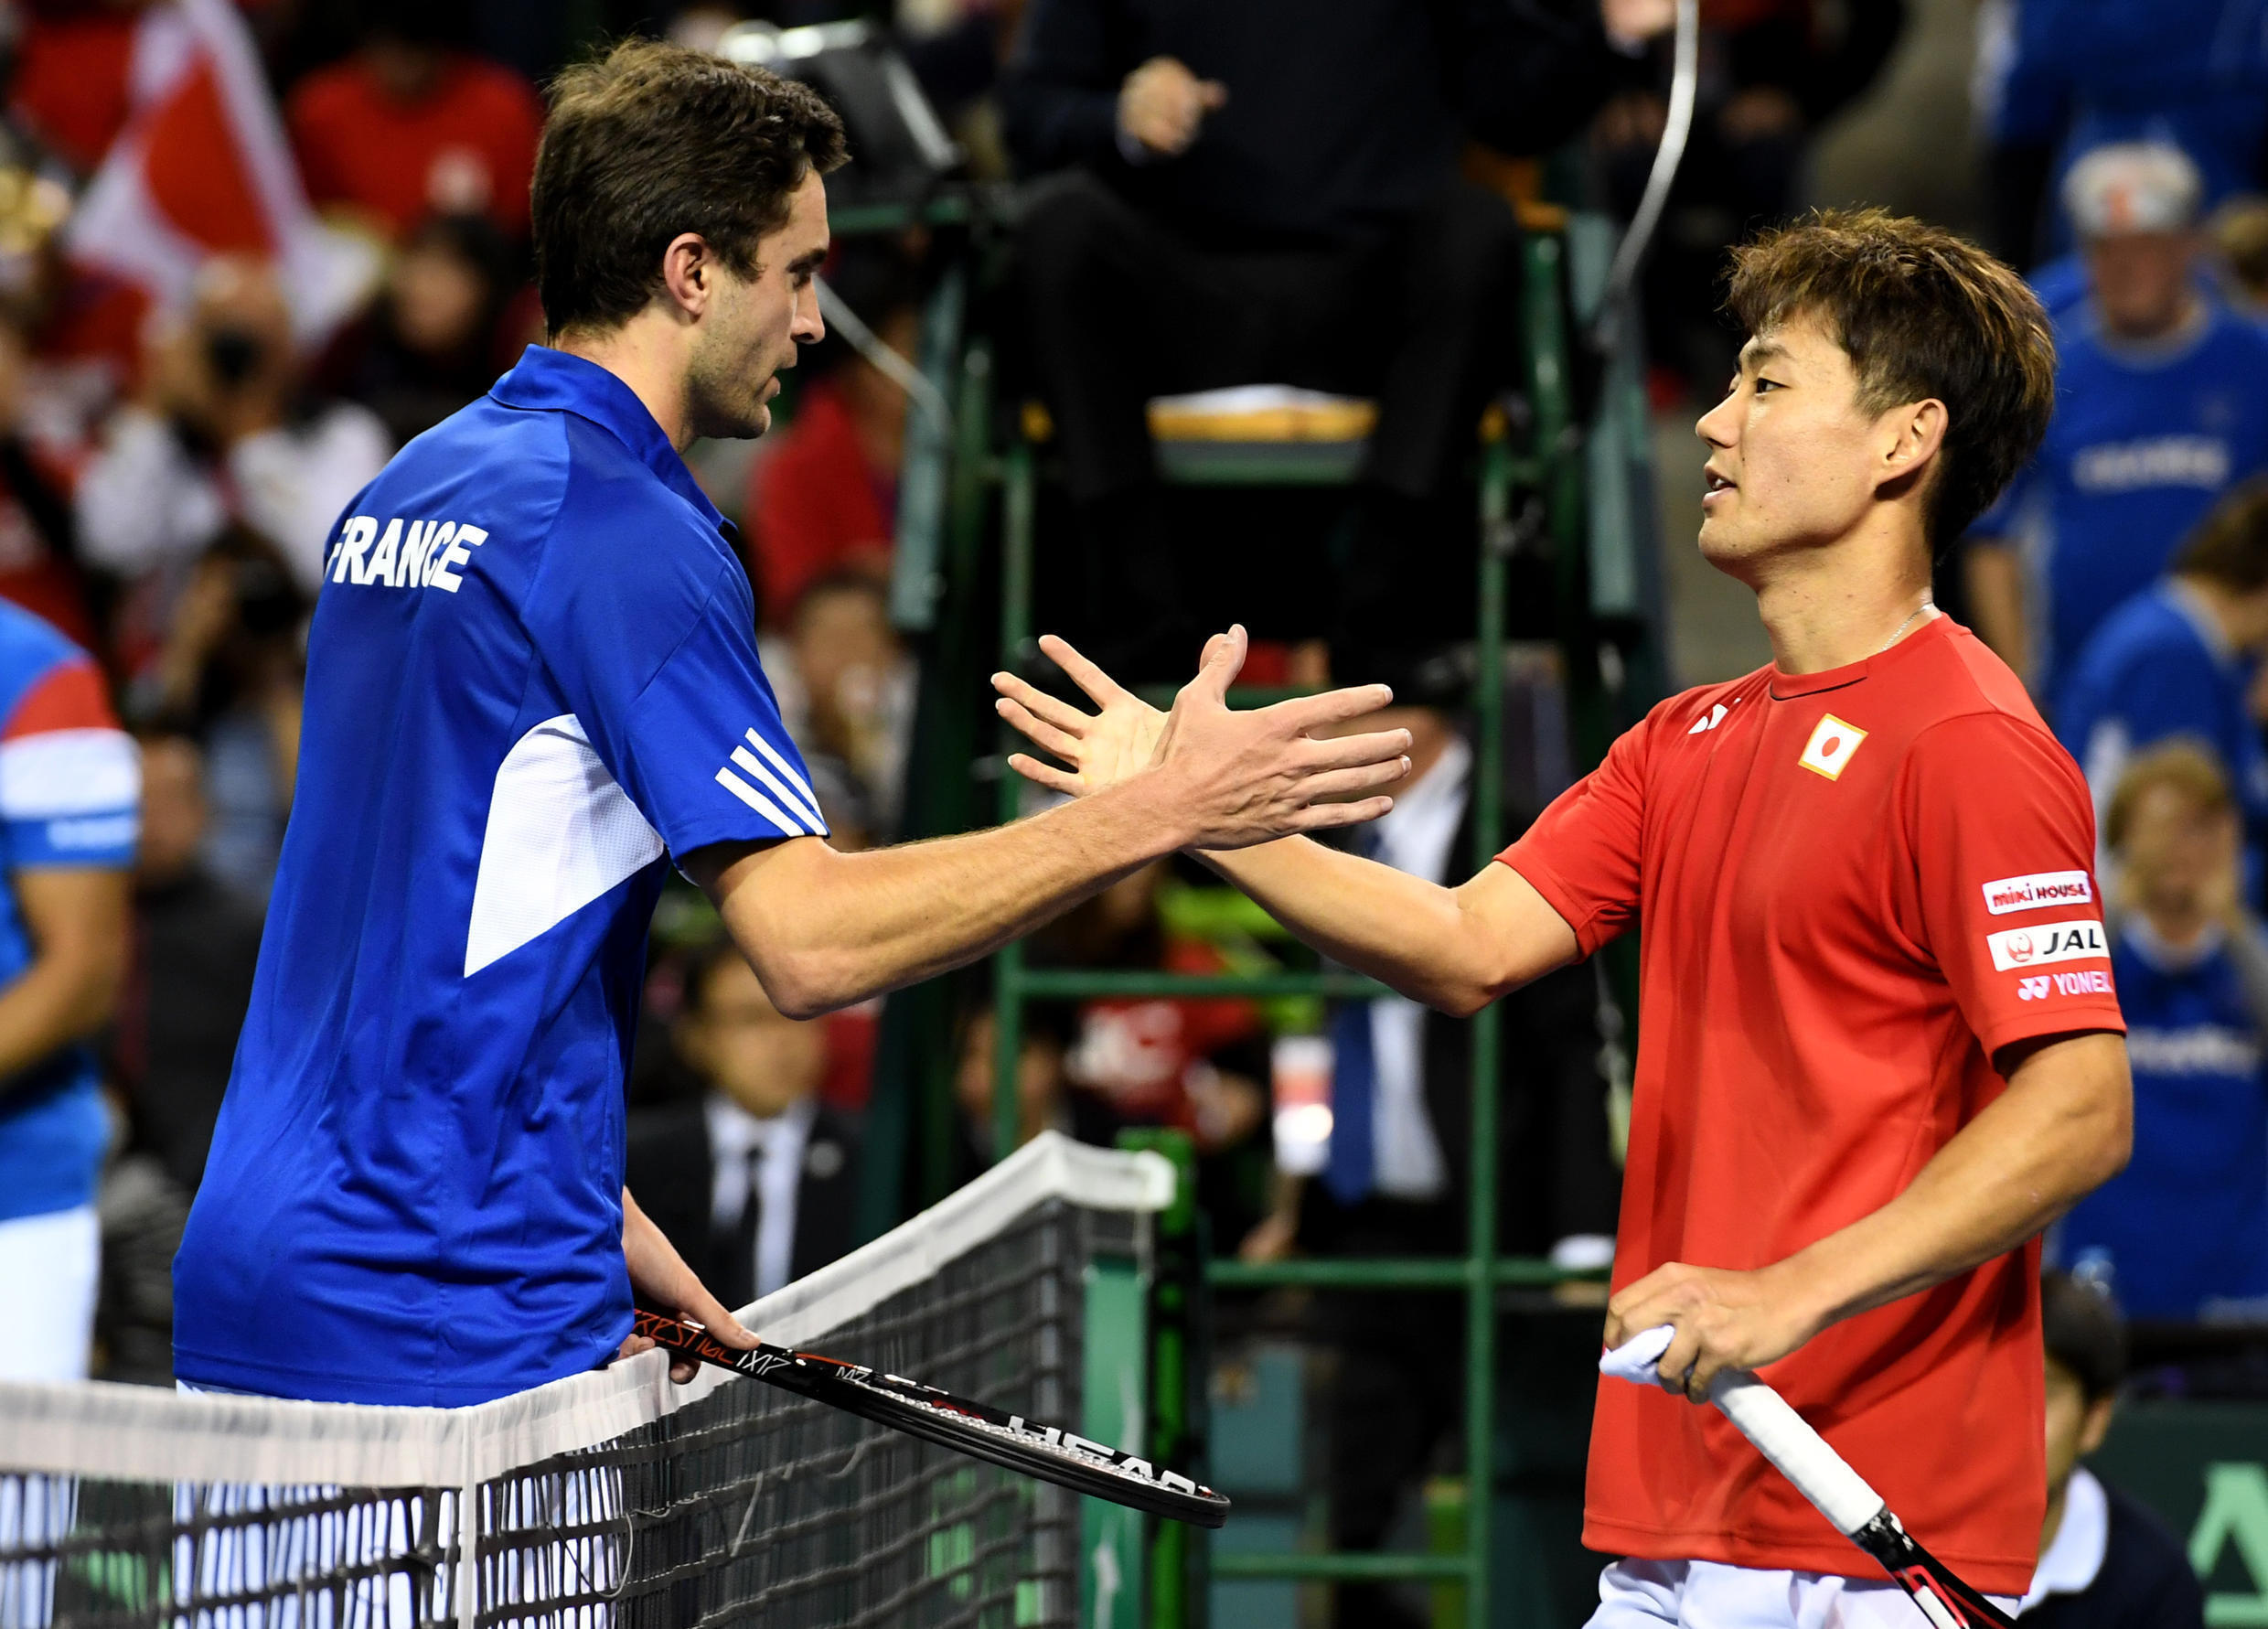 Gilles Simon is congratulated by Yoshihito Nishioka after their Davis Cup first round second match.